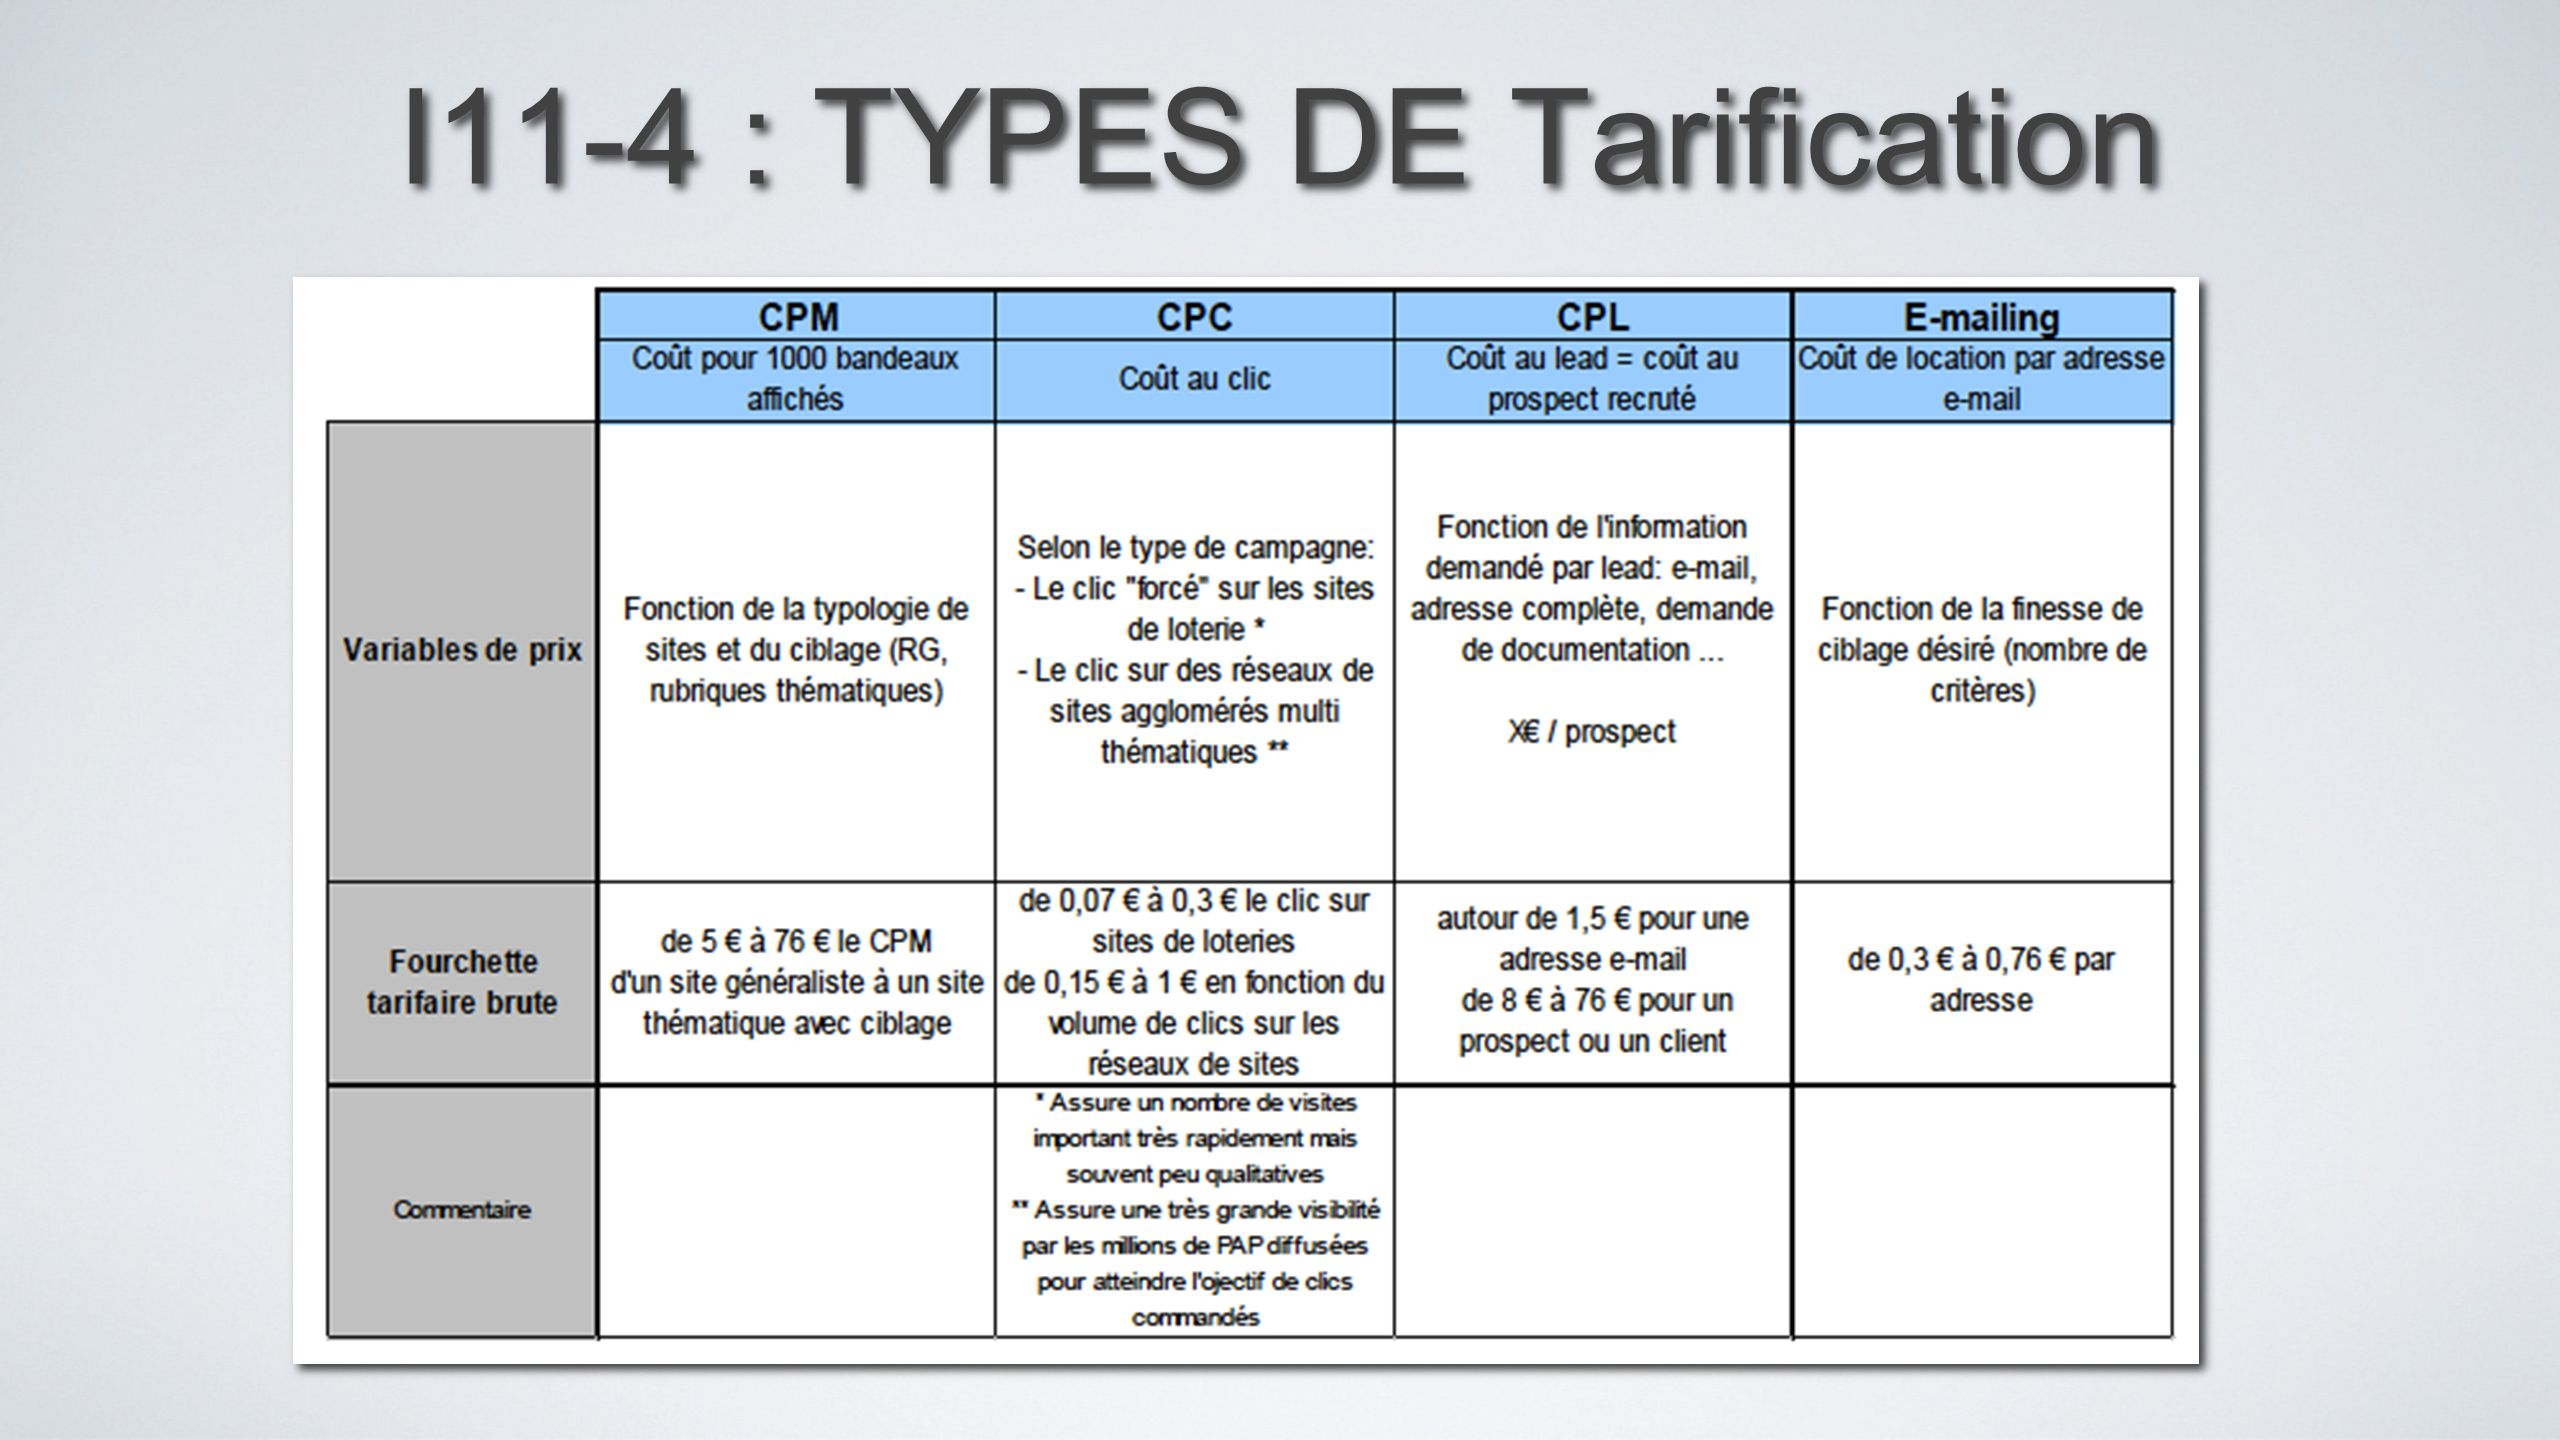 I11-4 : TYPES DE Tarification